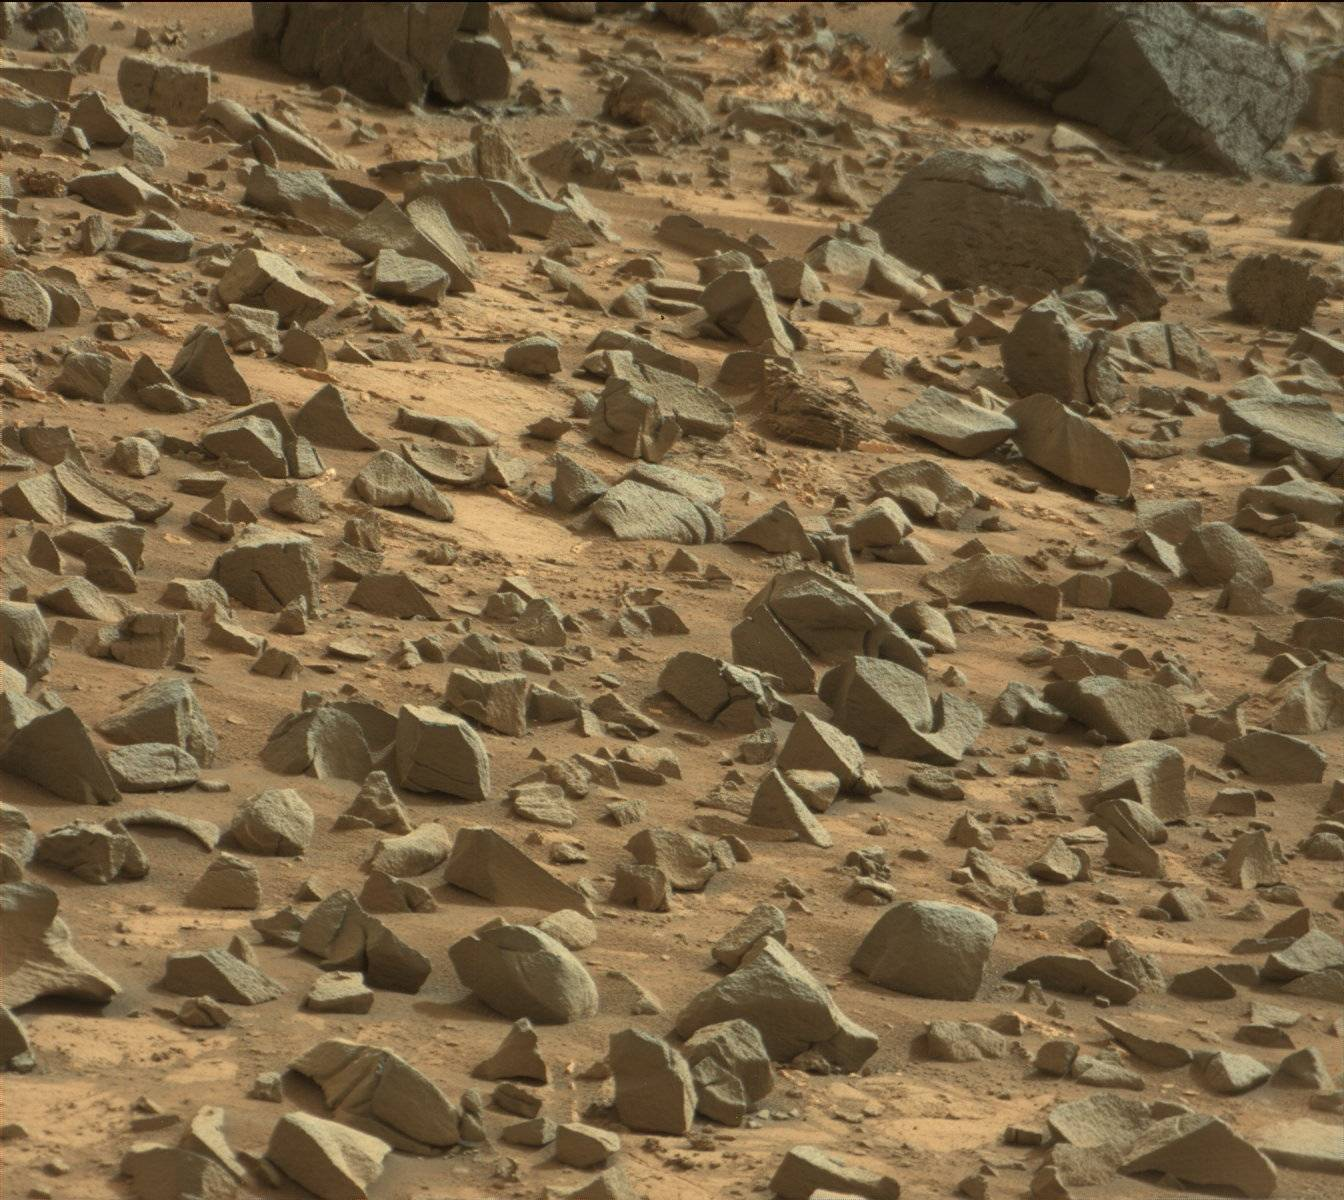 Nasa's Mars rover Curiosity acquired this image using its Mast Camera (Mastcam) on Sol 844